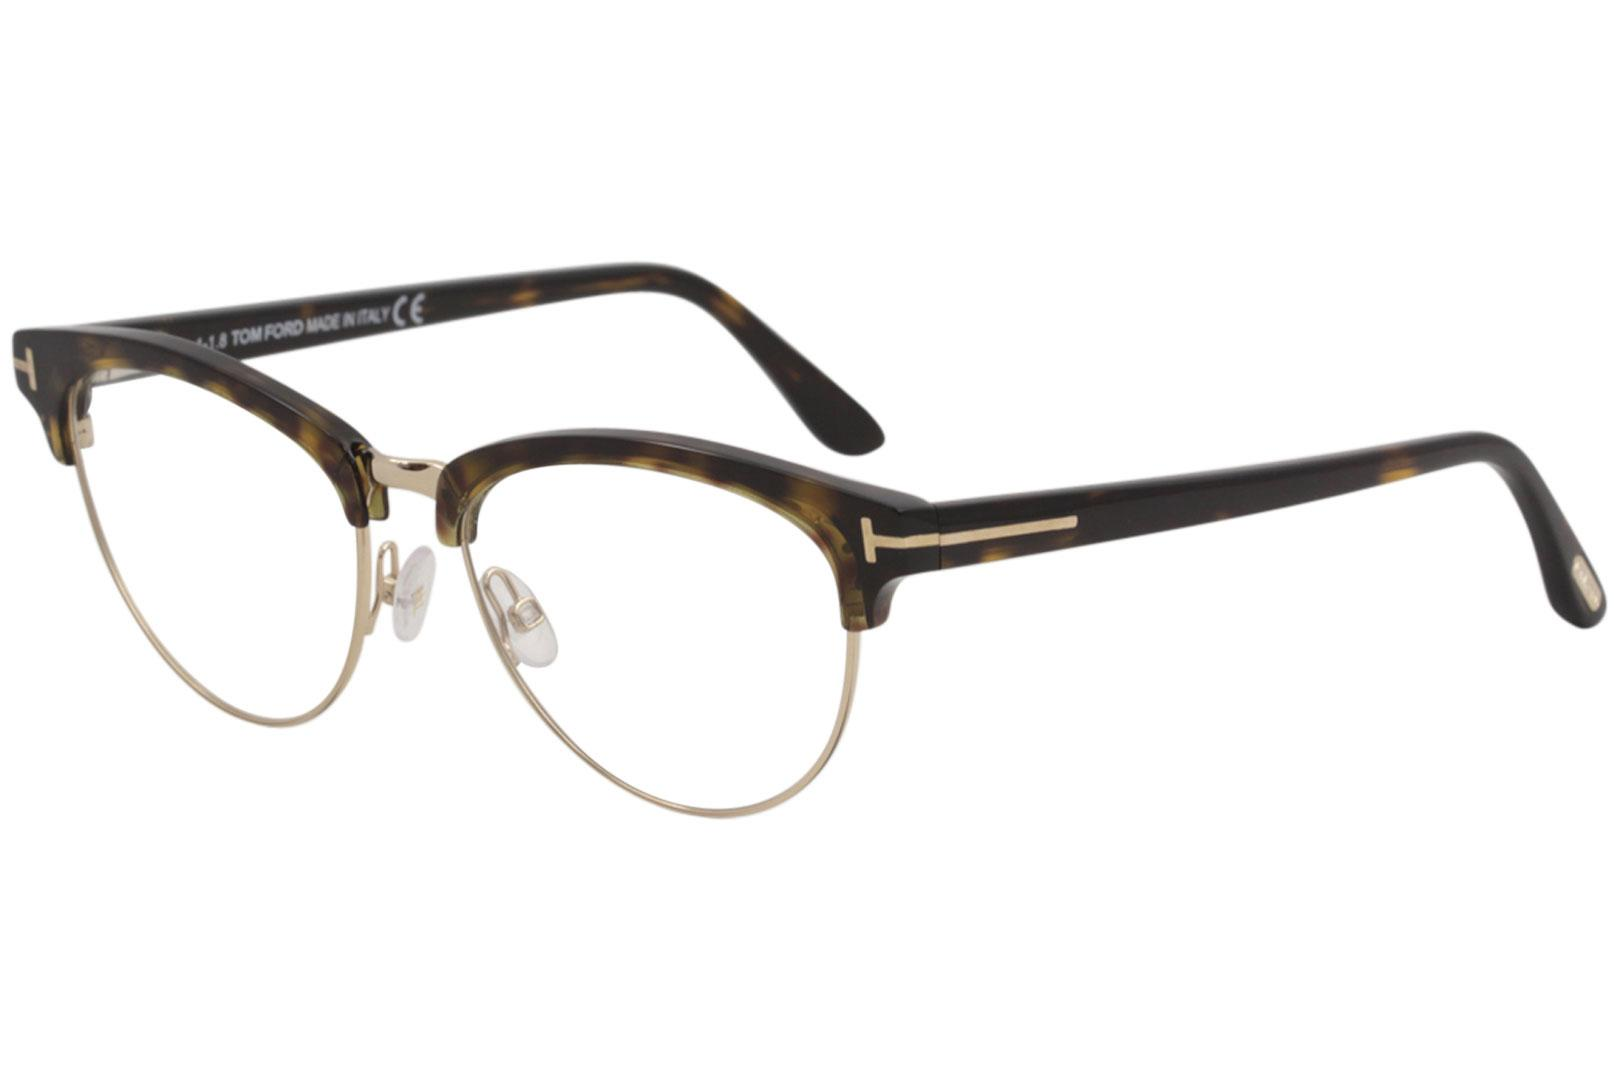 7980adbec6e3 Tom Ford Women s Eyeglasses TF5471 TF 5471 Full Rim Optical Frame